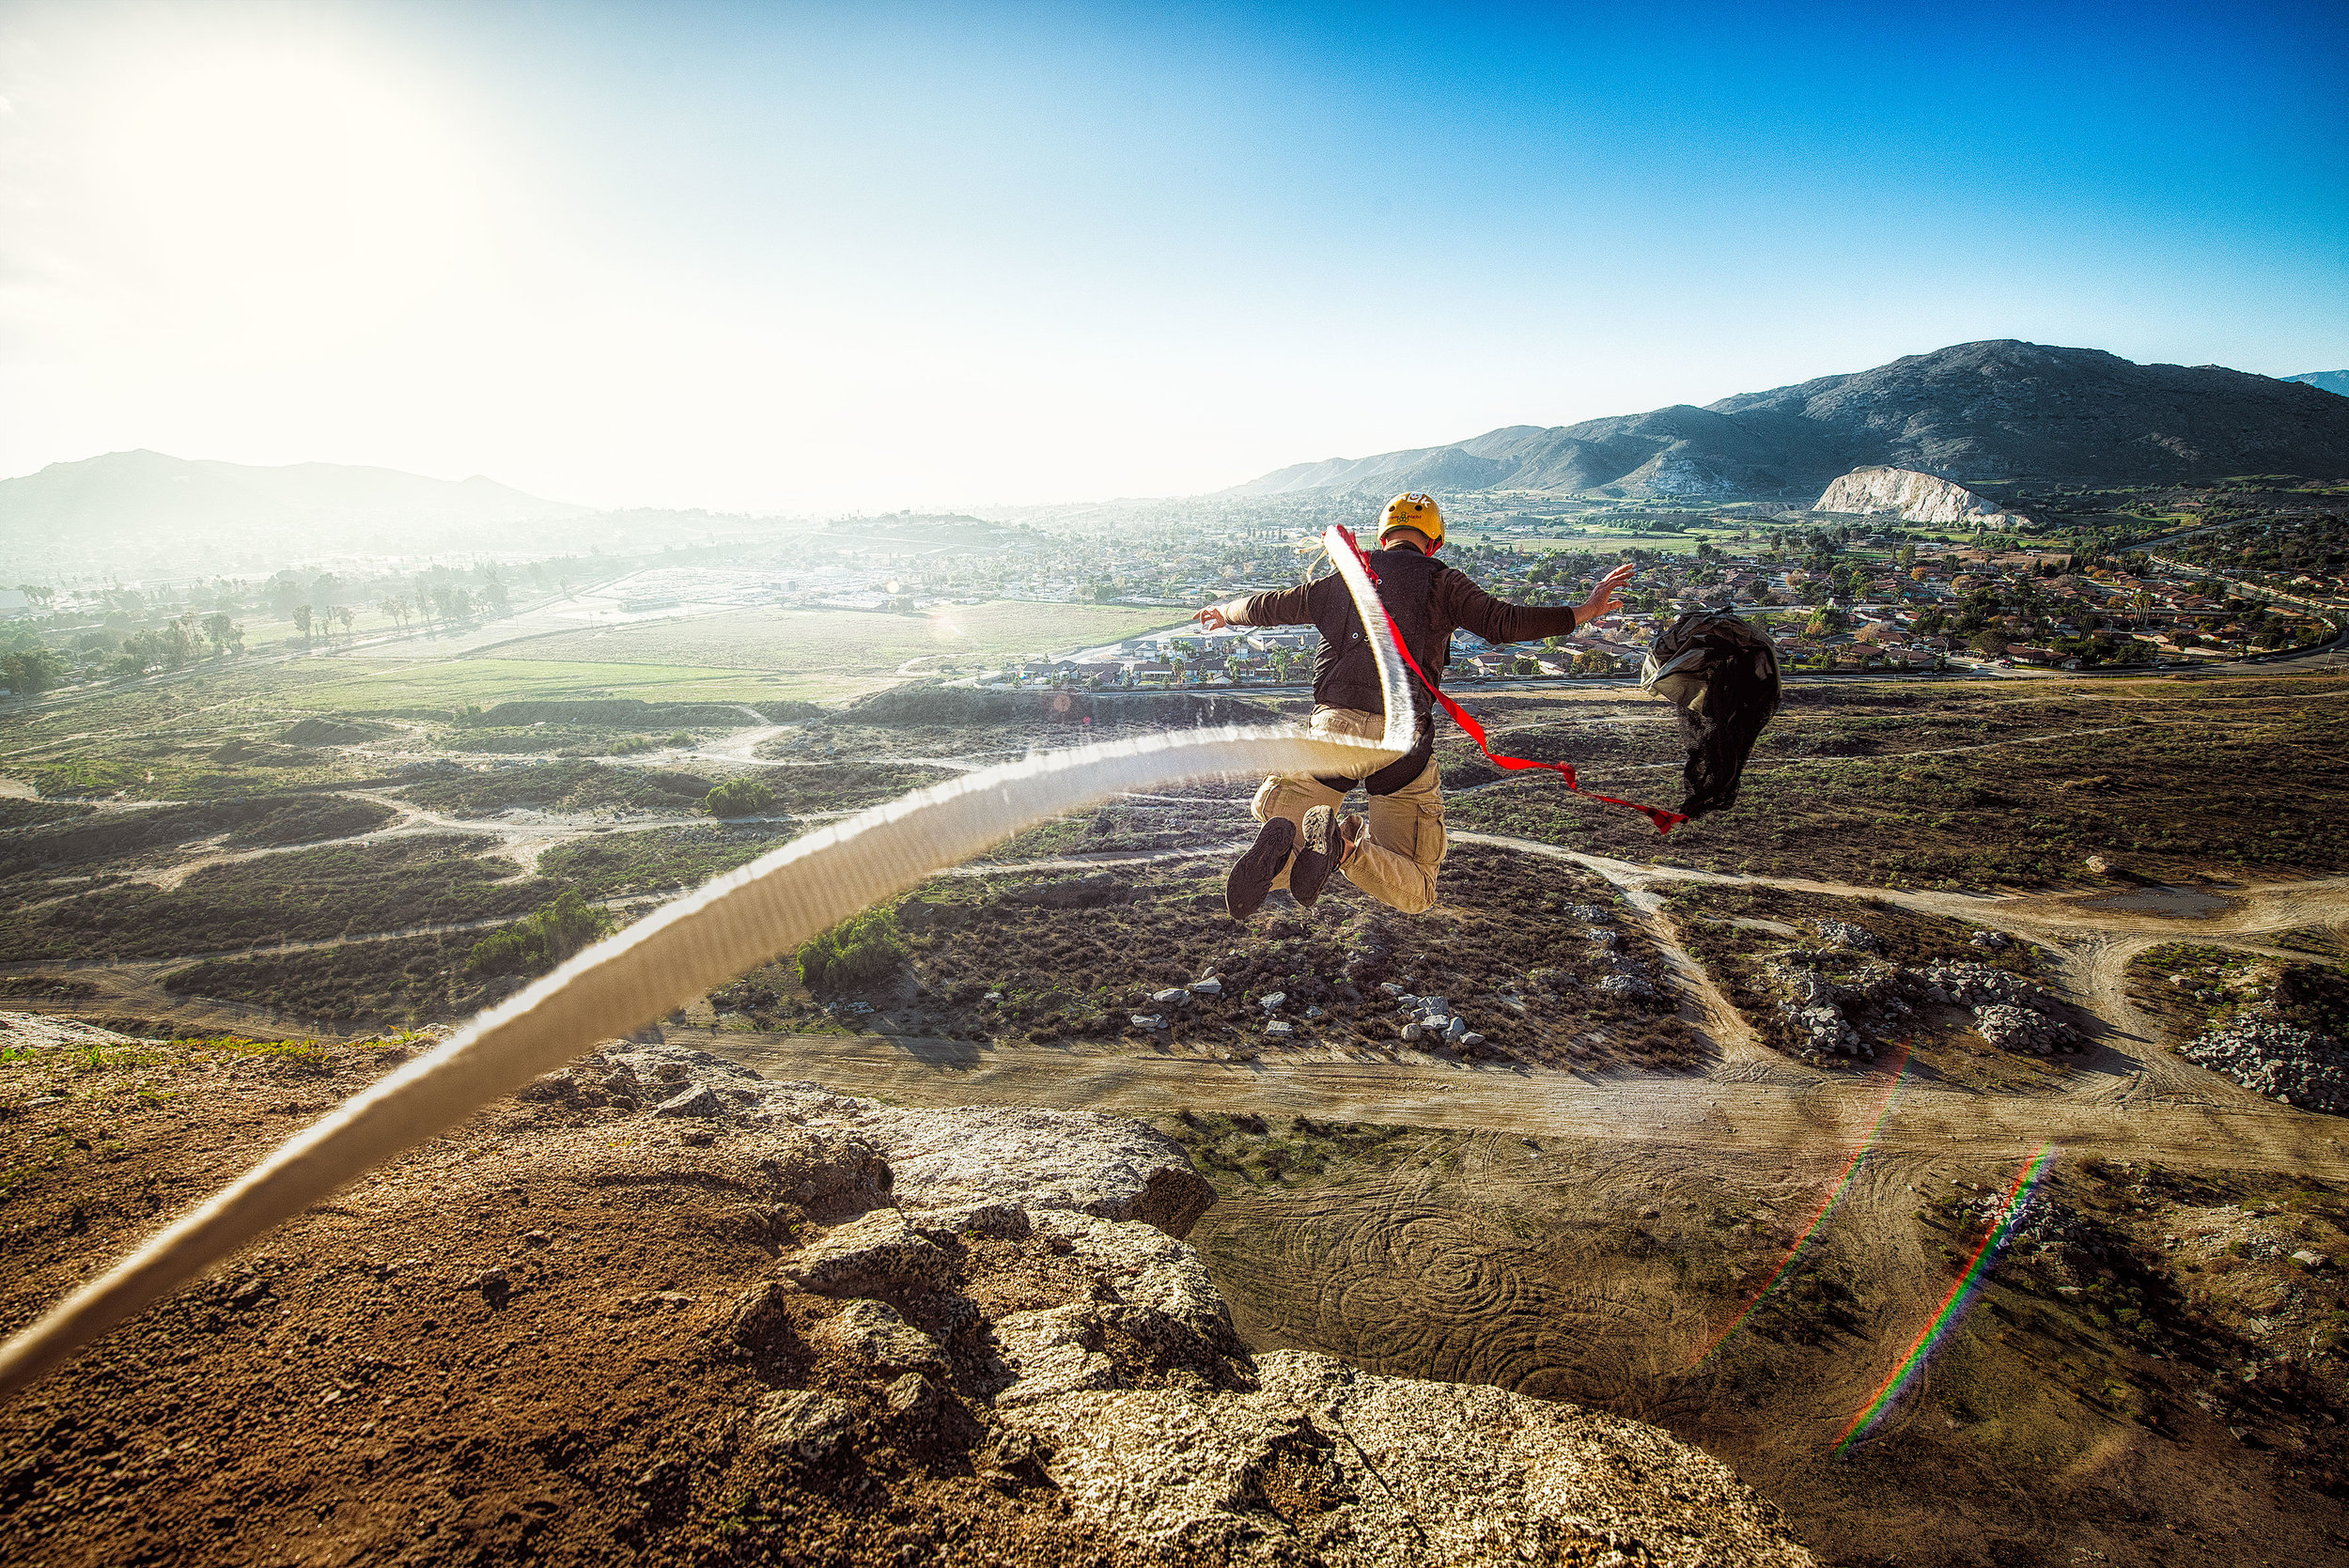 austin-trigg-wing-suit-base-jump-fly-socal-quarry-free-fall.jpg